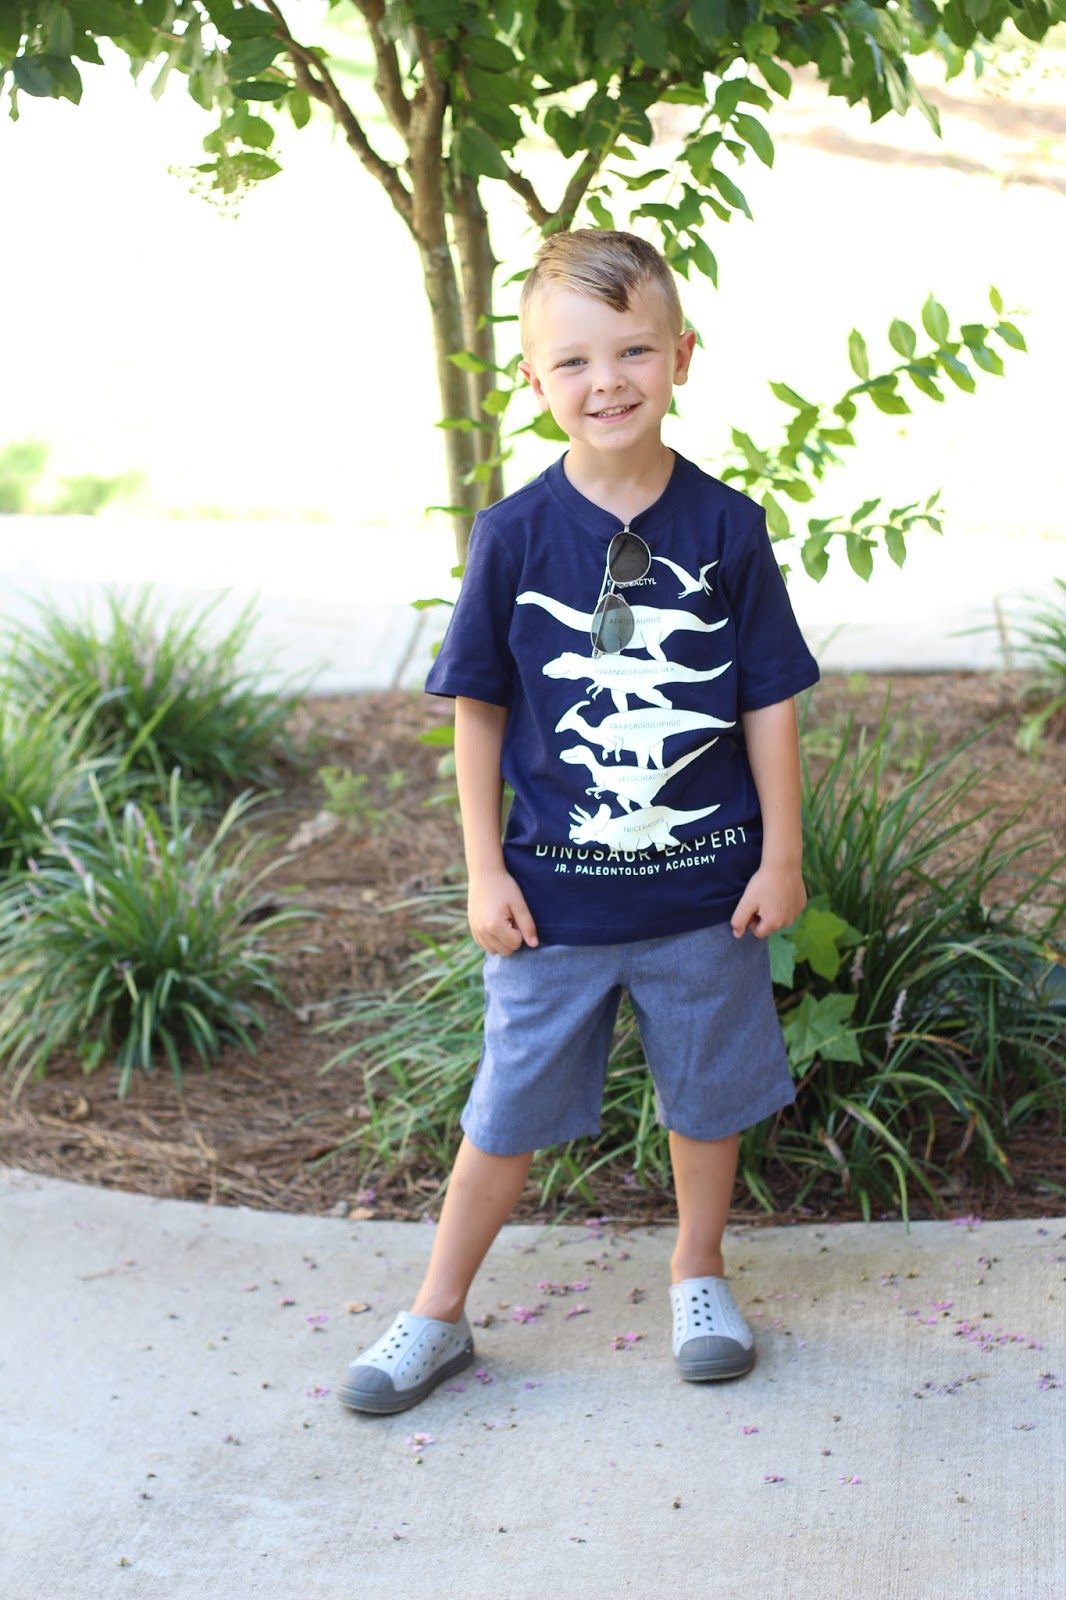 Kohl's Carters Back to School, Cool glow in the dark clothing